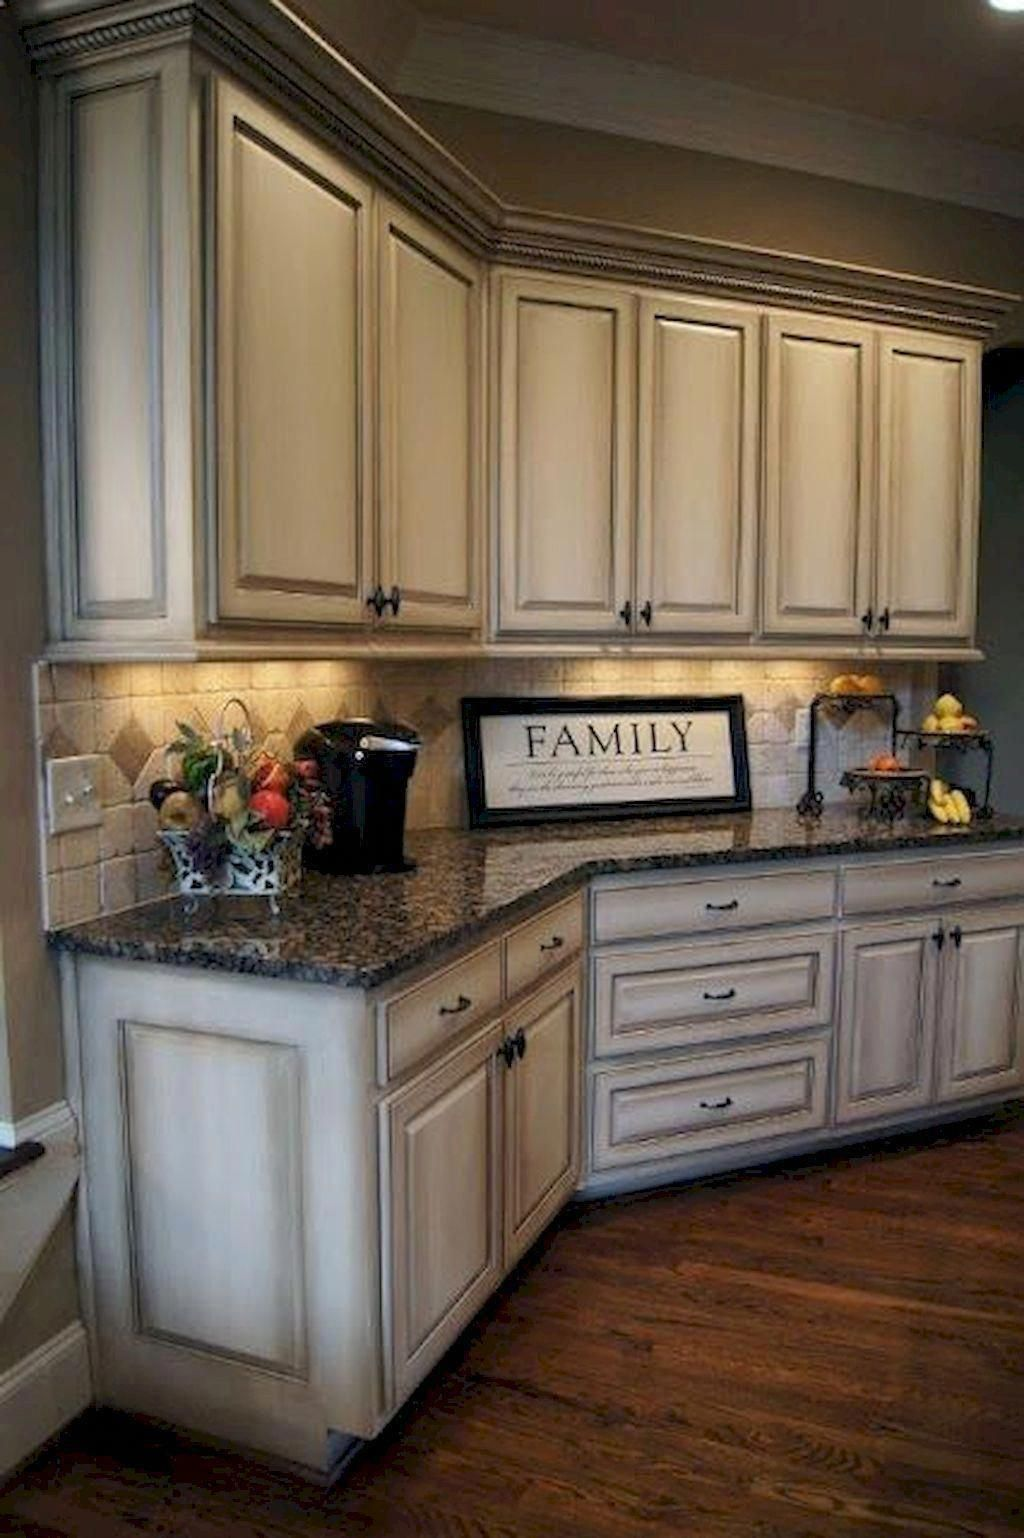 Two Tone Kitchen Cabinets Espressokitchencabinets Kitchencabinetsbeforeandafter Kitchenca Rustic Kitchen Cabinets Best Kitchen Cabinets New Kitchen Cabinets